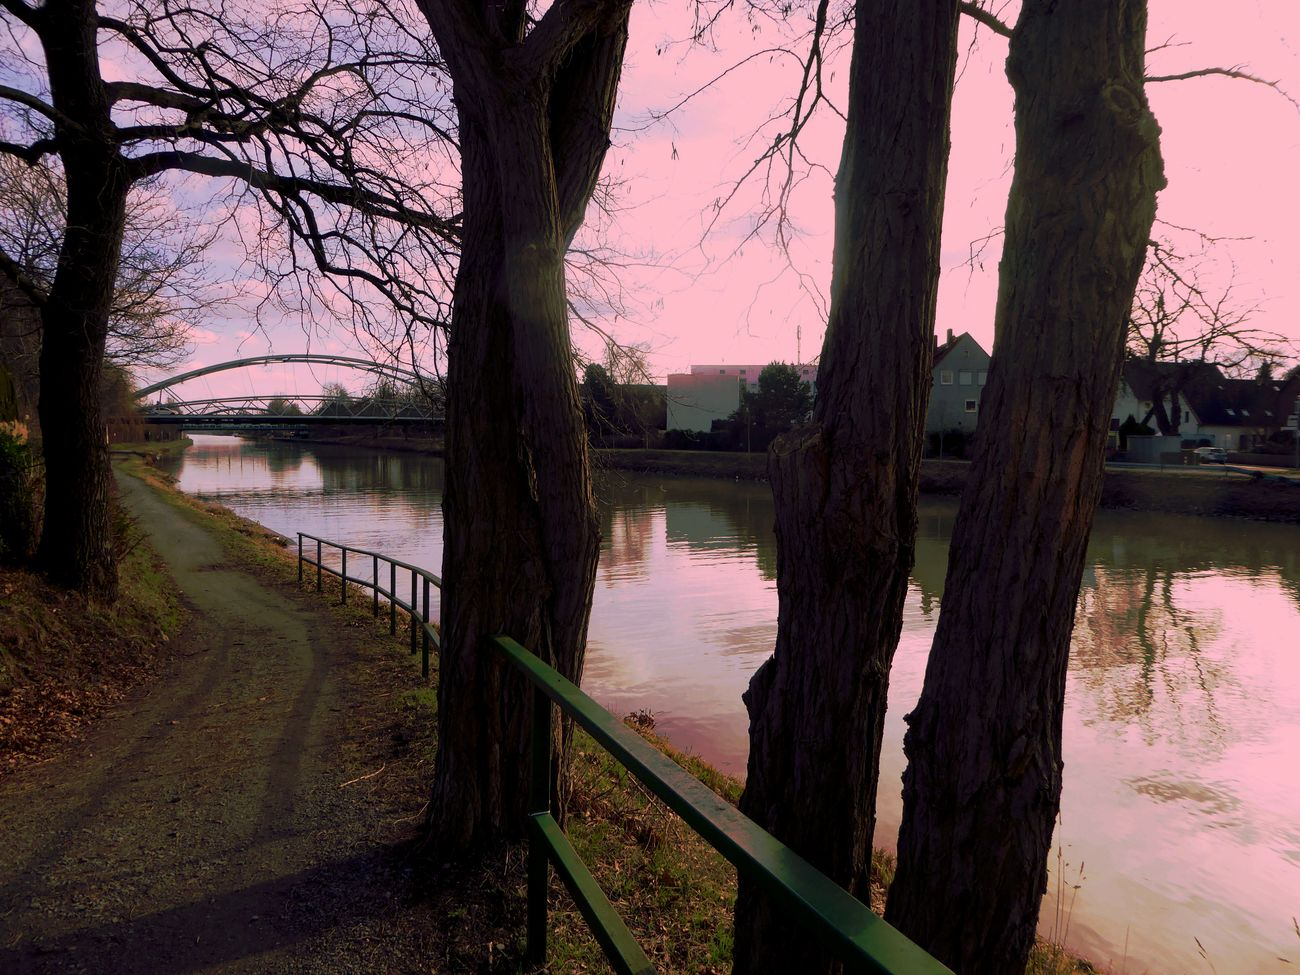 Am Mittellandkanal In Hannover Beauty In Nature I Make My World The Way I Like It I'm A Edit-maniac😄😍 Playing With Effects Express Yourself ❤ Cold Outside,time For Creativity😎 For My Friends 😍😘🎁 Cold Outside ❄⛄  Brrrrrrrrr❄❄❄❄ Beauty In Winter😍 Enjoying The Veiw  Tranquility Lovemyhometown Cloudy Sky-nice View Enjoy The Little Things Cold Outside ❄⛄  Bridge - Man Made Structure Water No People